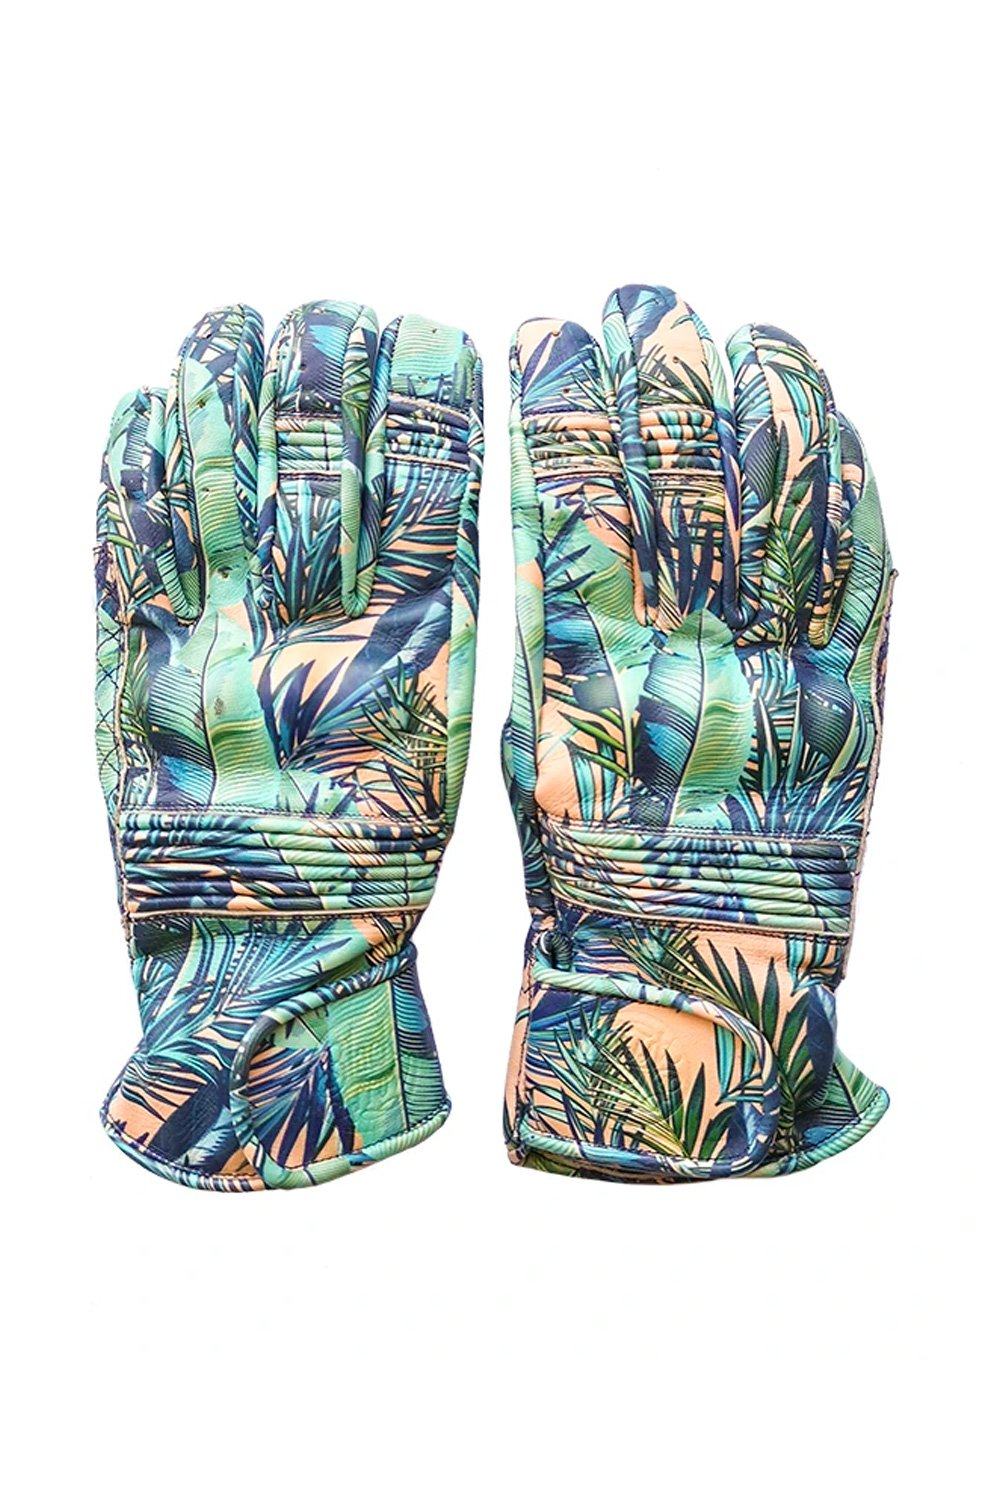 QUEEN BEE MOTORCYCLE GLOVES - PALM TREE